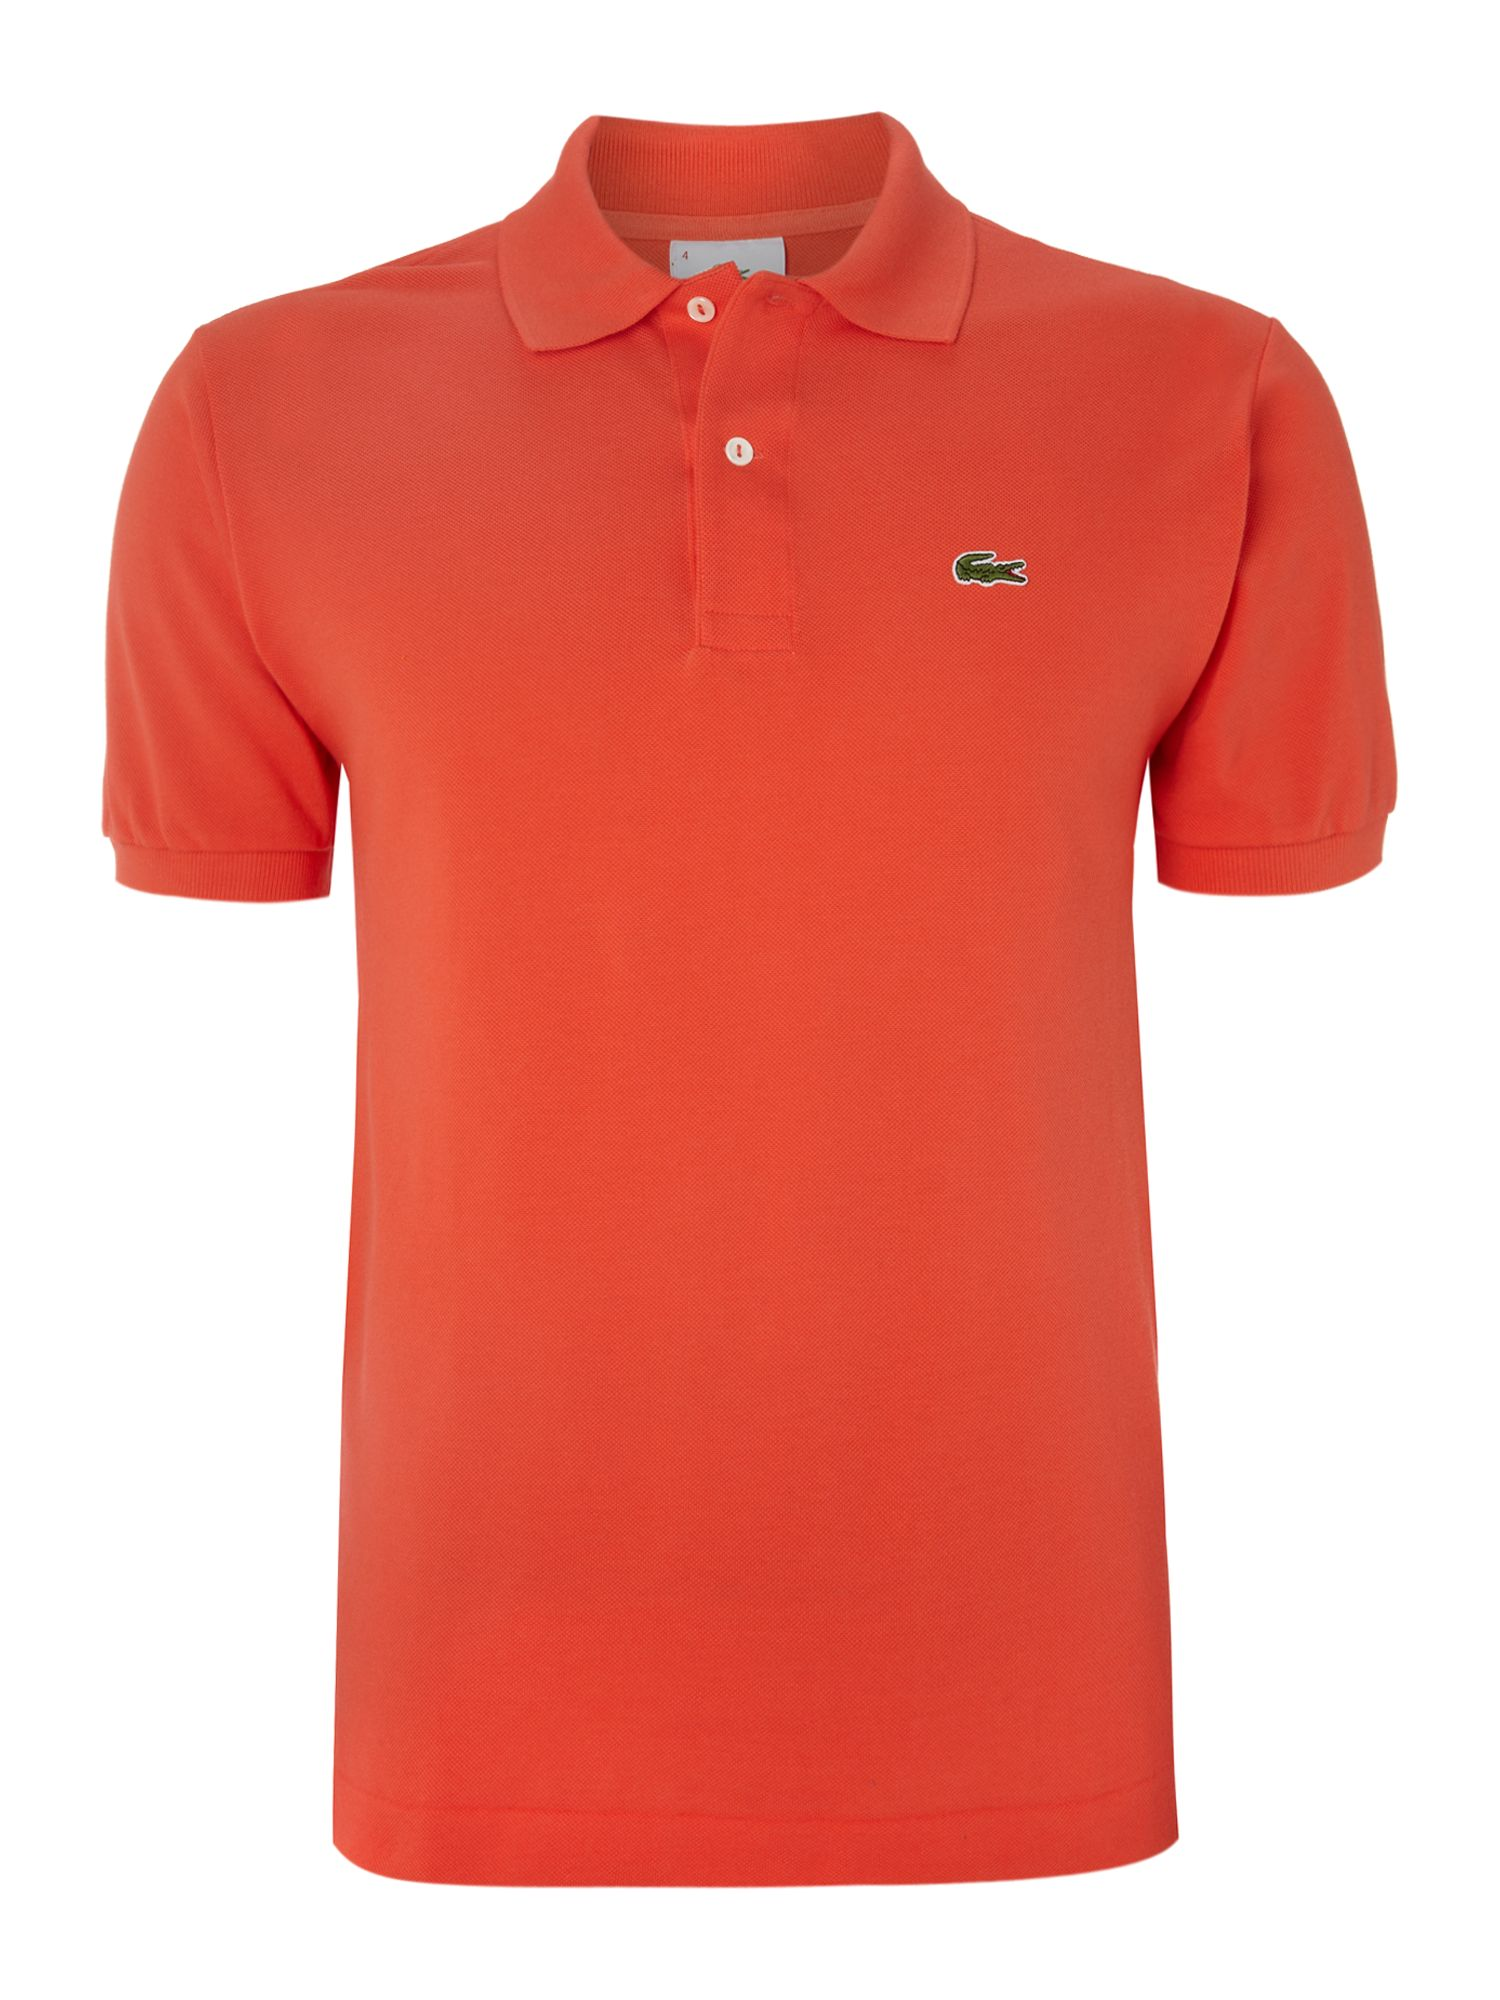 Lacoste Classic Polo Shirt In Orange For Men Lyst